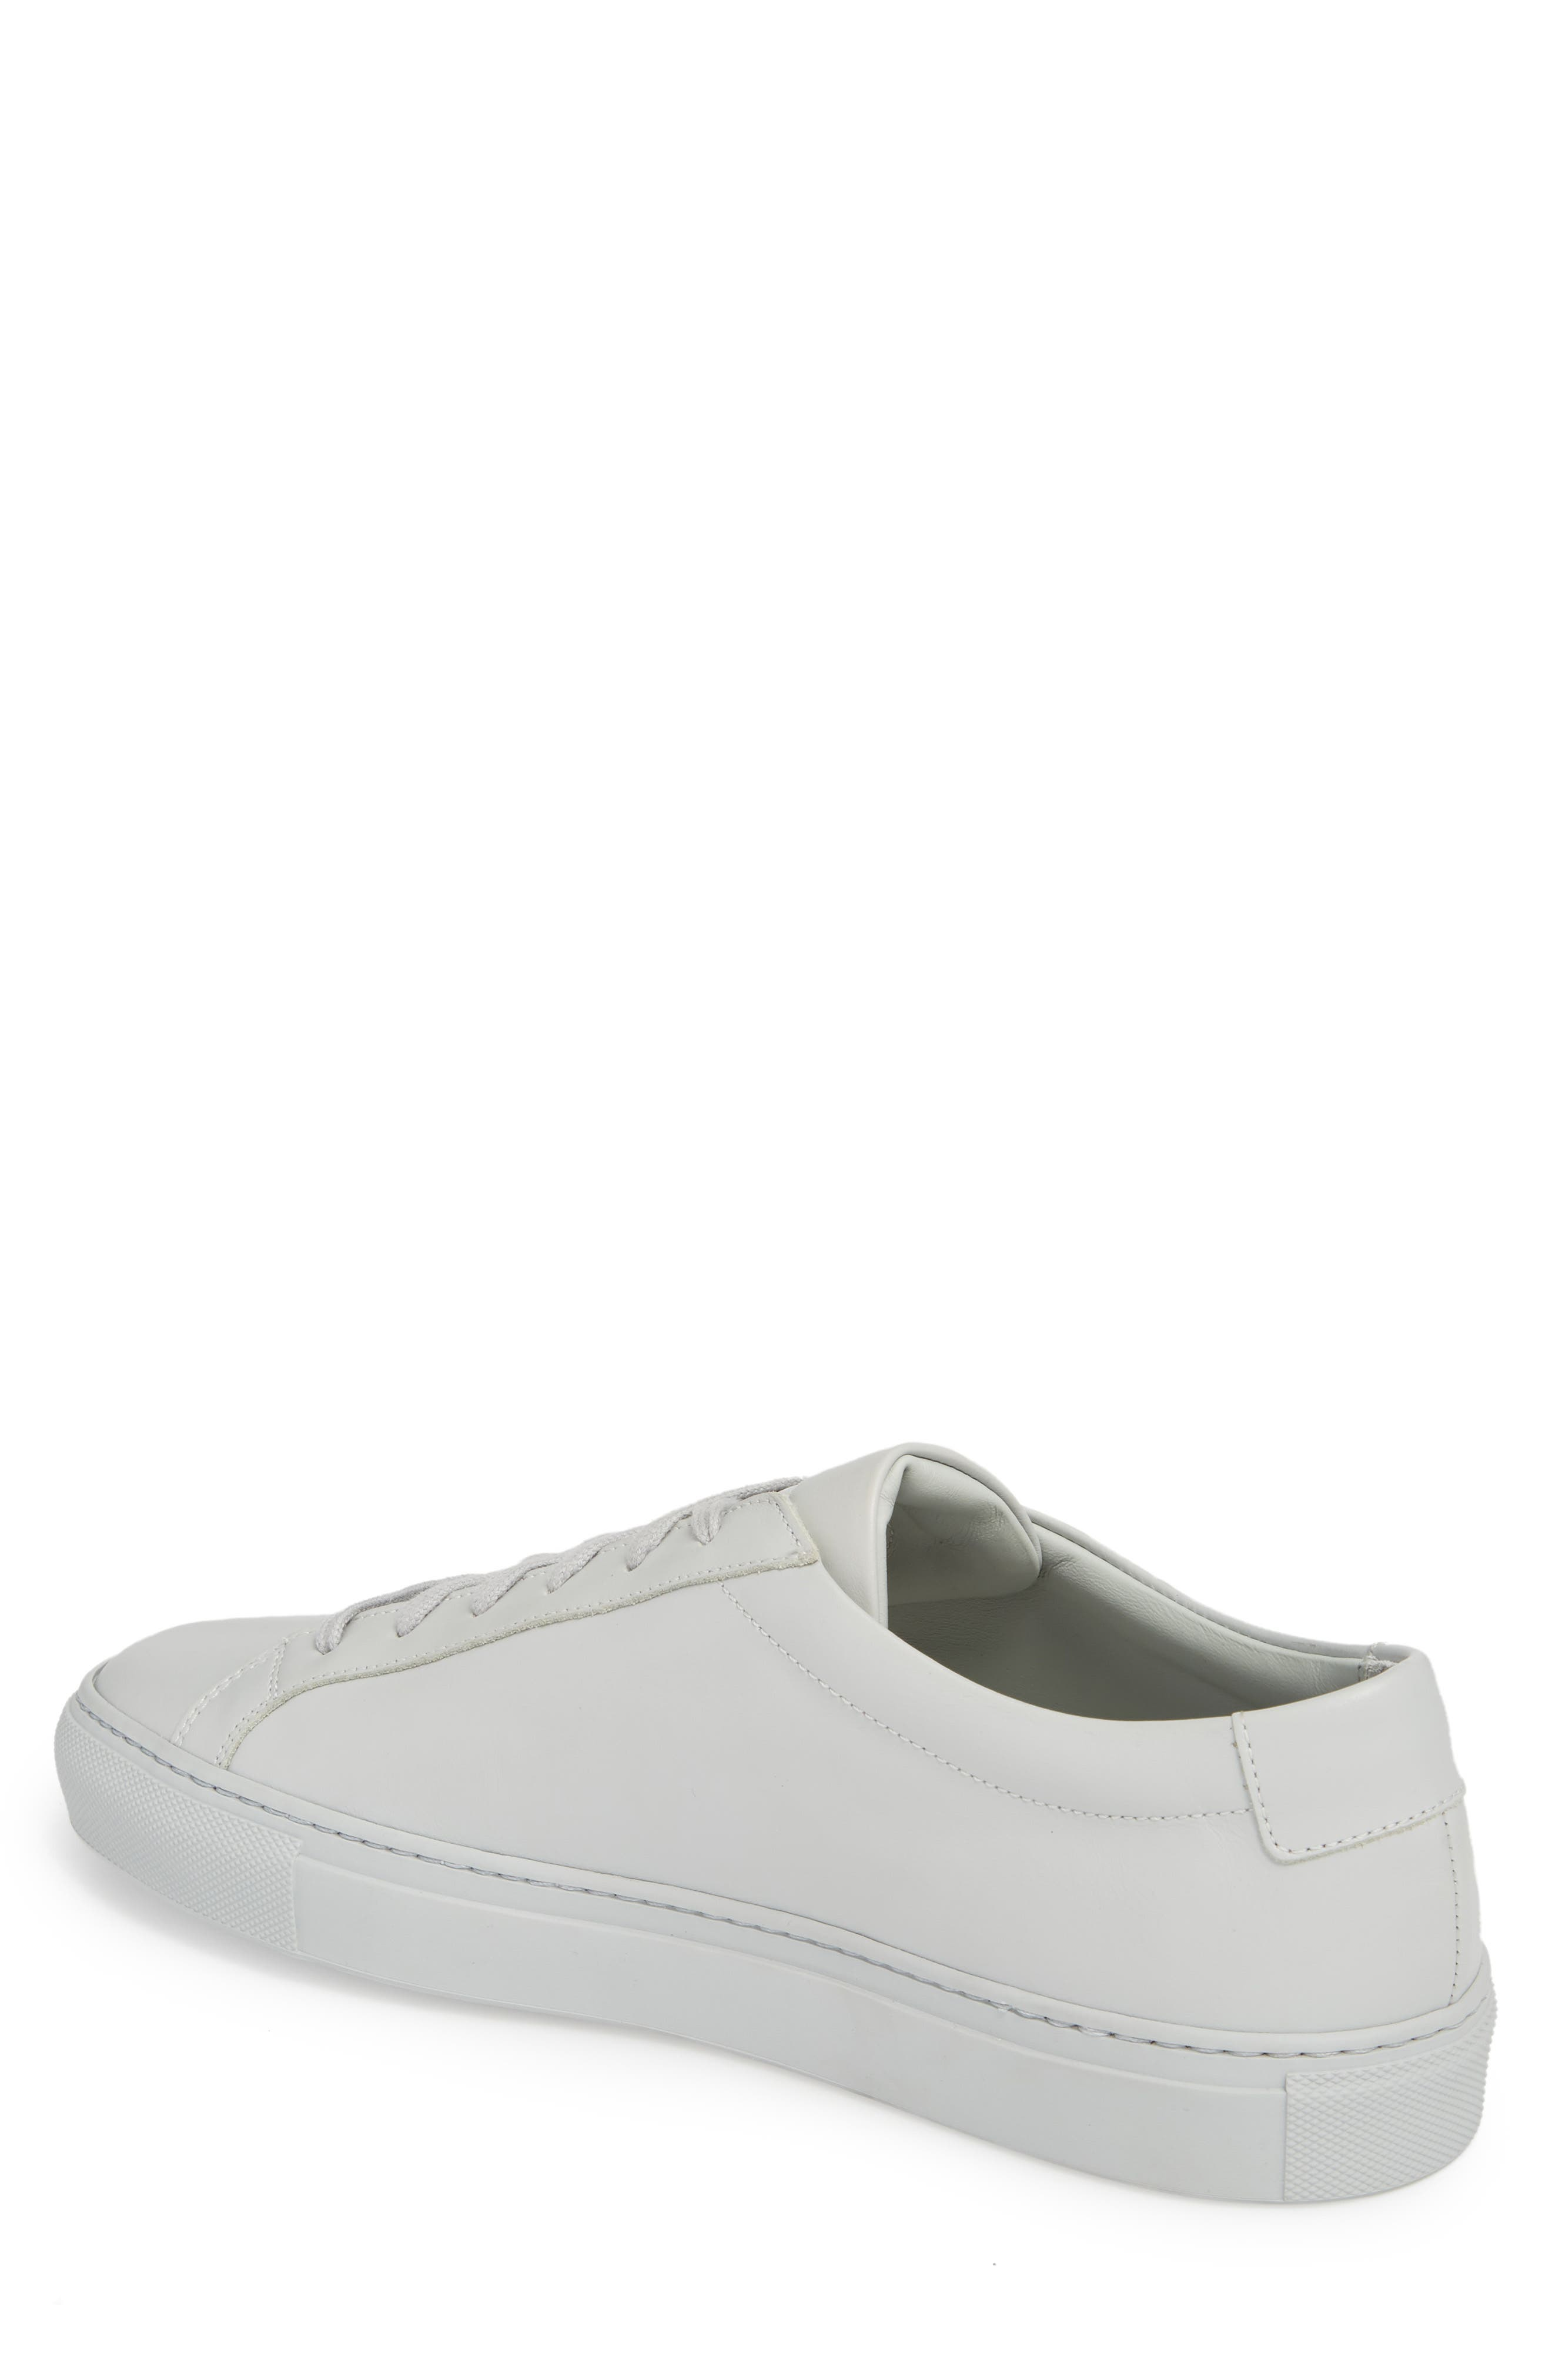 d84b14bc4eef Men s Common Projects Shoes